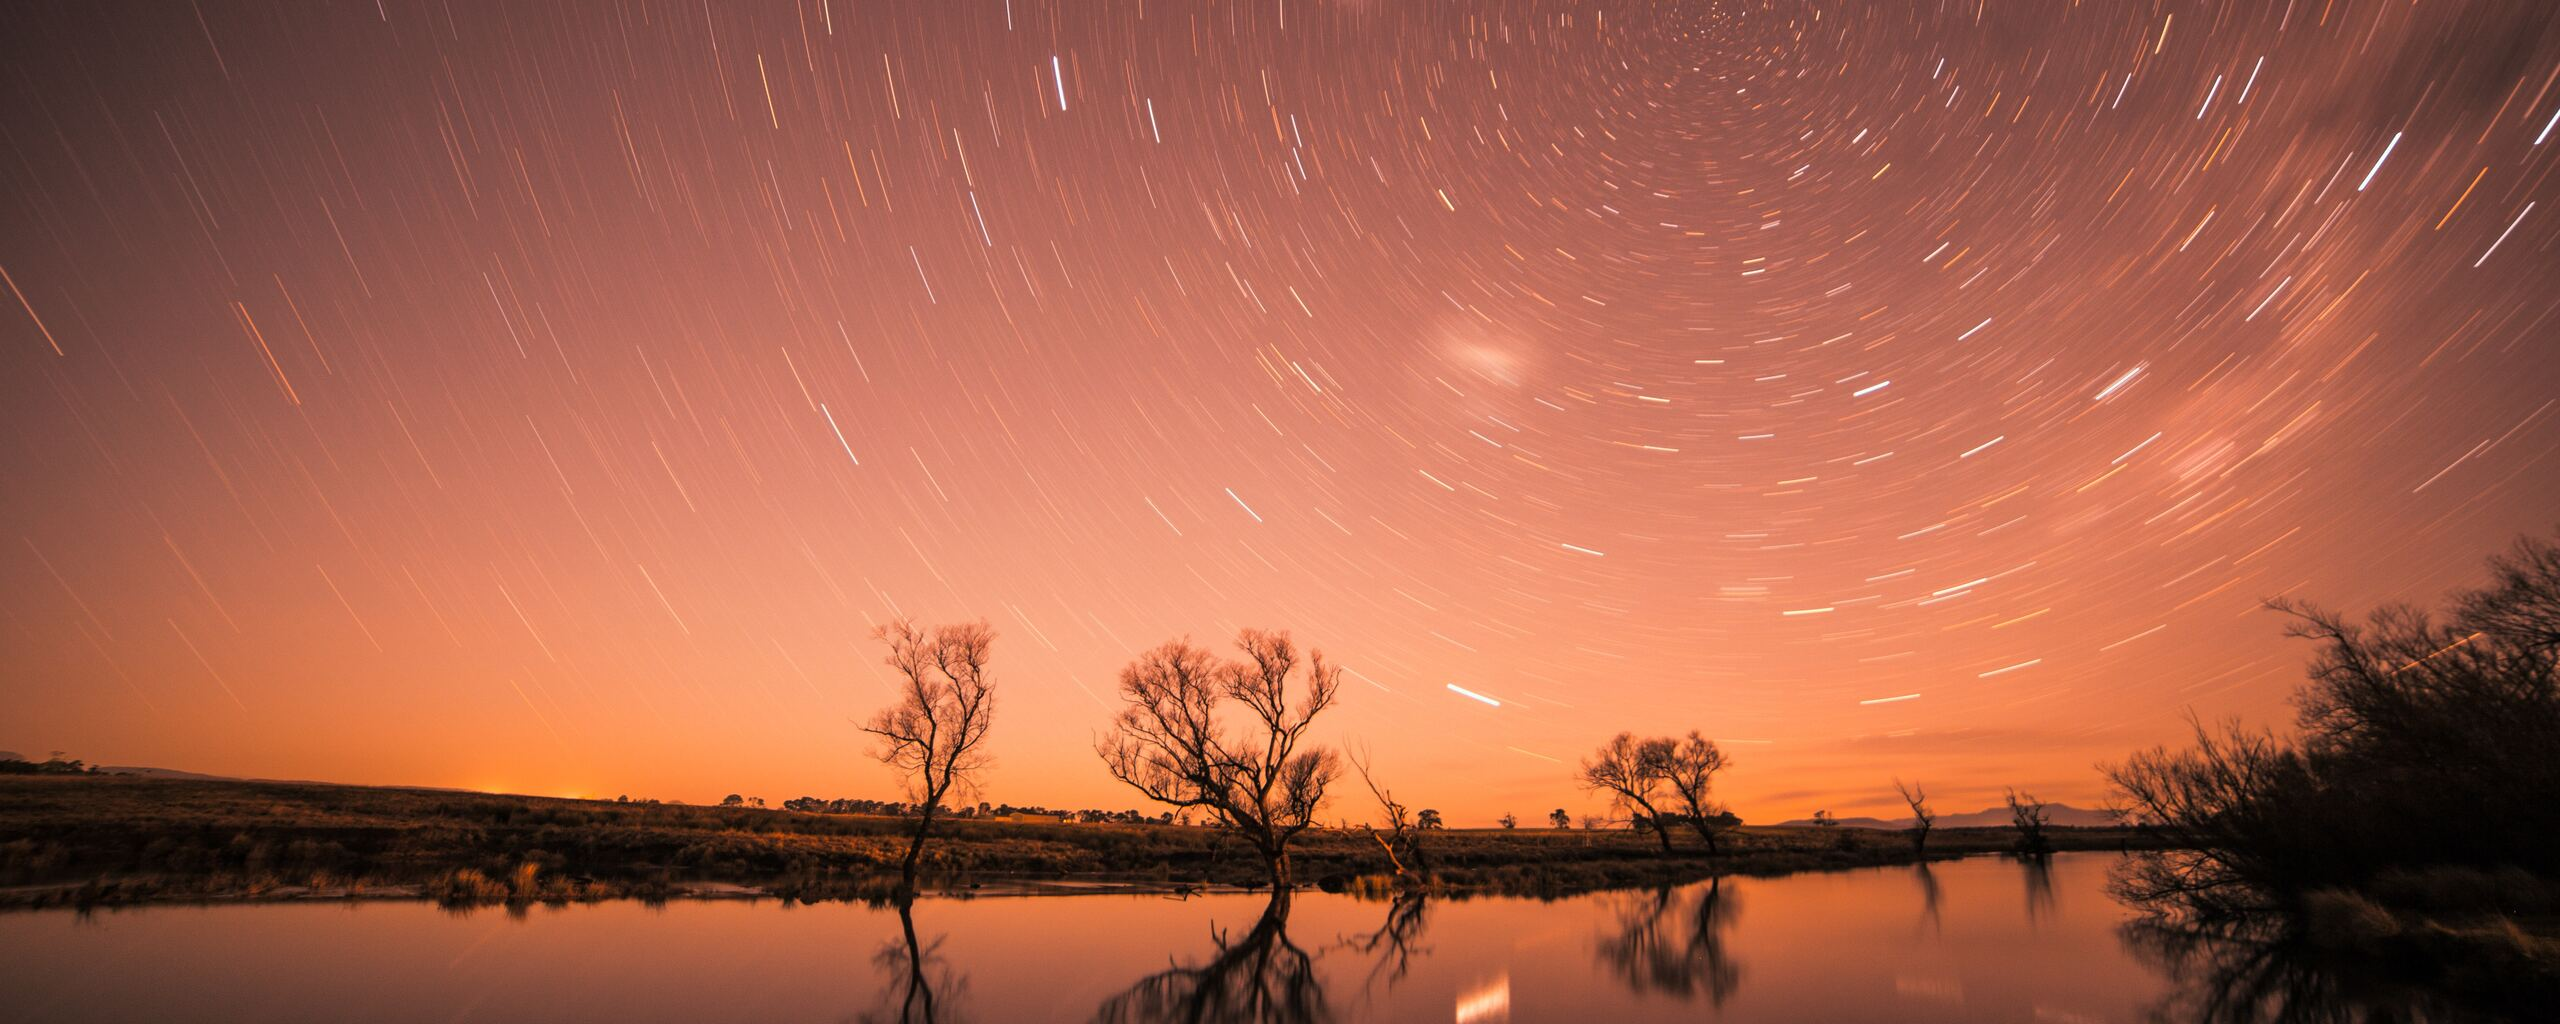 startrail-longexposure-trees-cool-jf.jpg